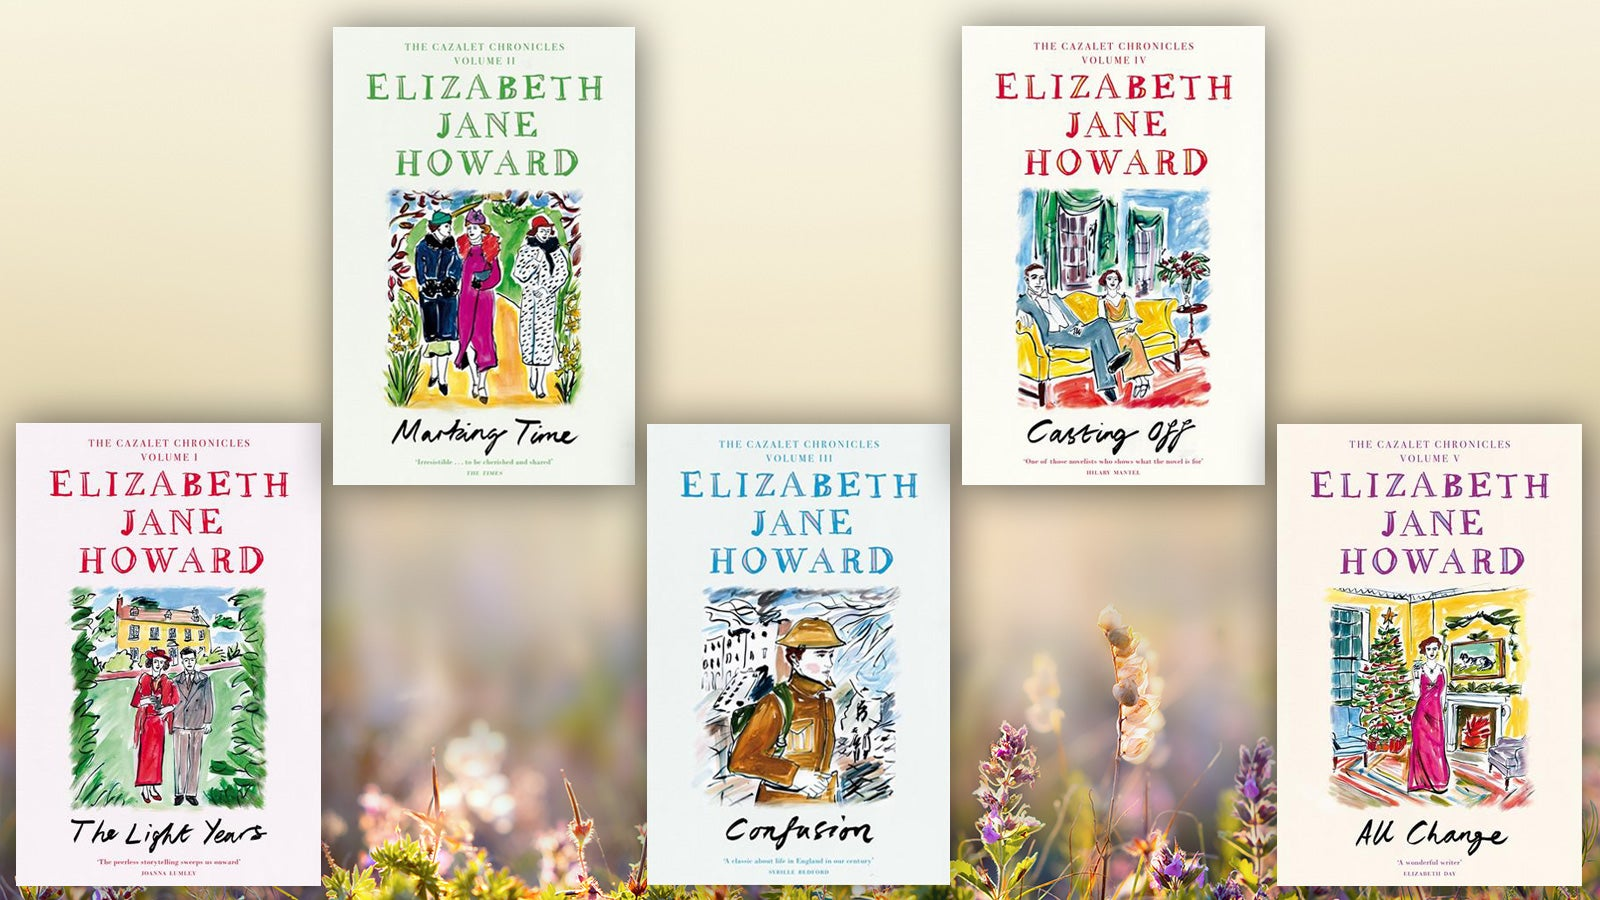 The covers of the five Cazalet Chronicles books by Elizabeth Jane Howard, against a background of wildflowers